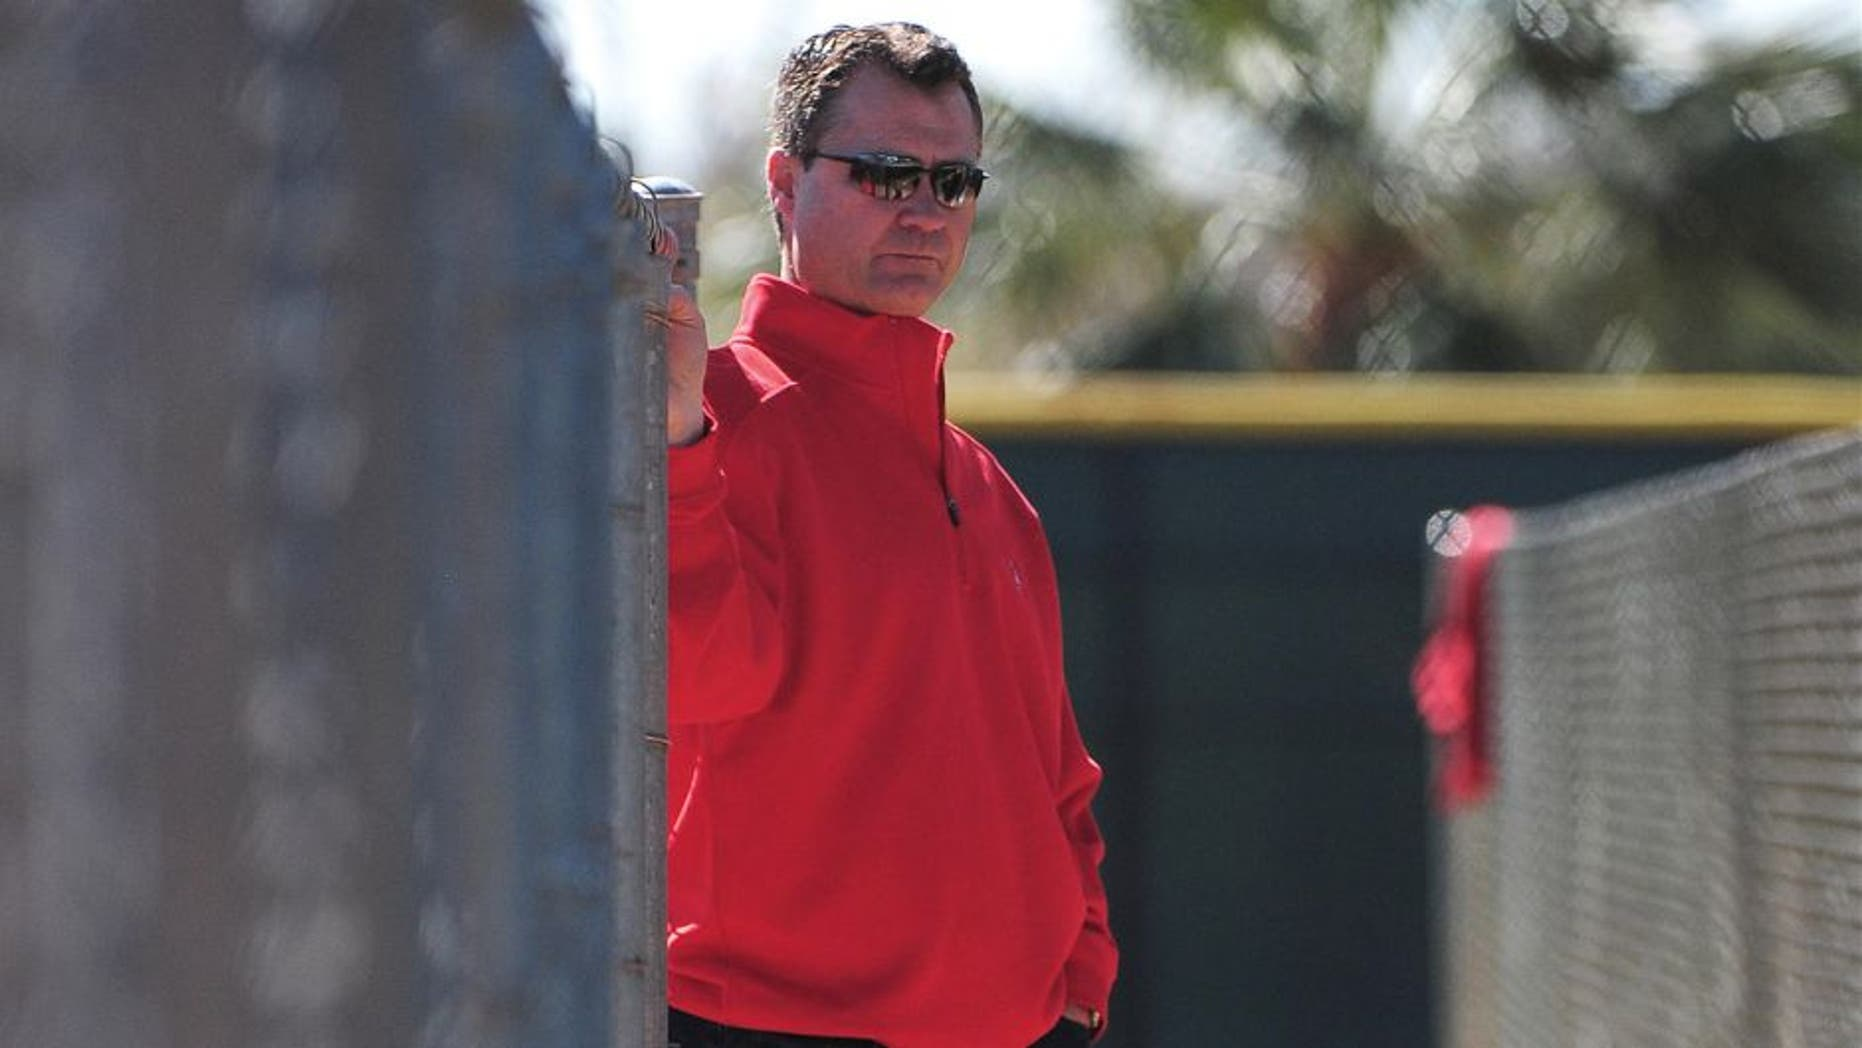 February 21, 2012; Tempe, AZ, USA; Los Angeles Angels assistant general manager Scott Servais watches during spring training at Tempe Diablo Stadium. Mandatory Credit: Kyle Terada-USA TODAY Sports